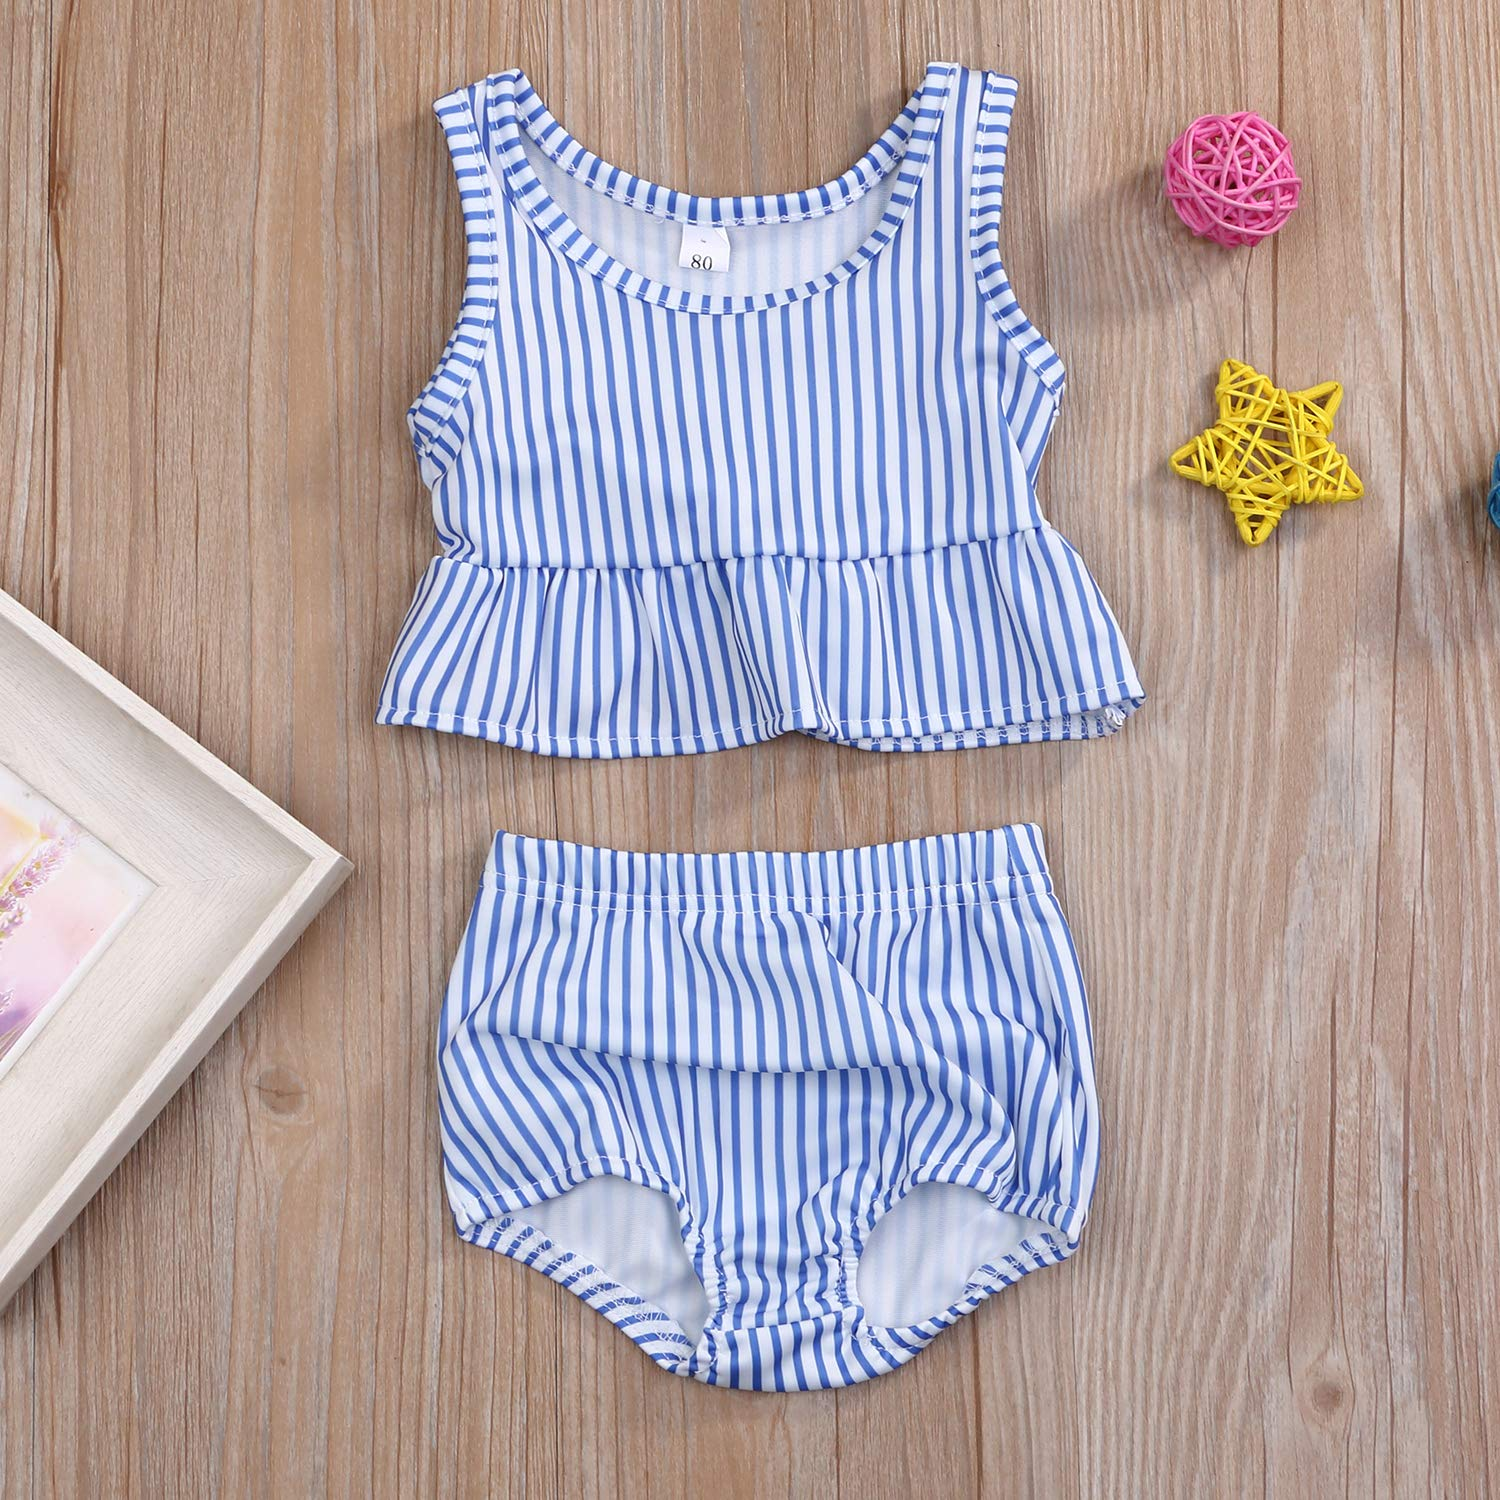 YOUNGER TREE Toddler Baby Girls Summer Swimsuit Sleeveless Striped Swimsuit Two-Piece Suit